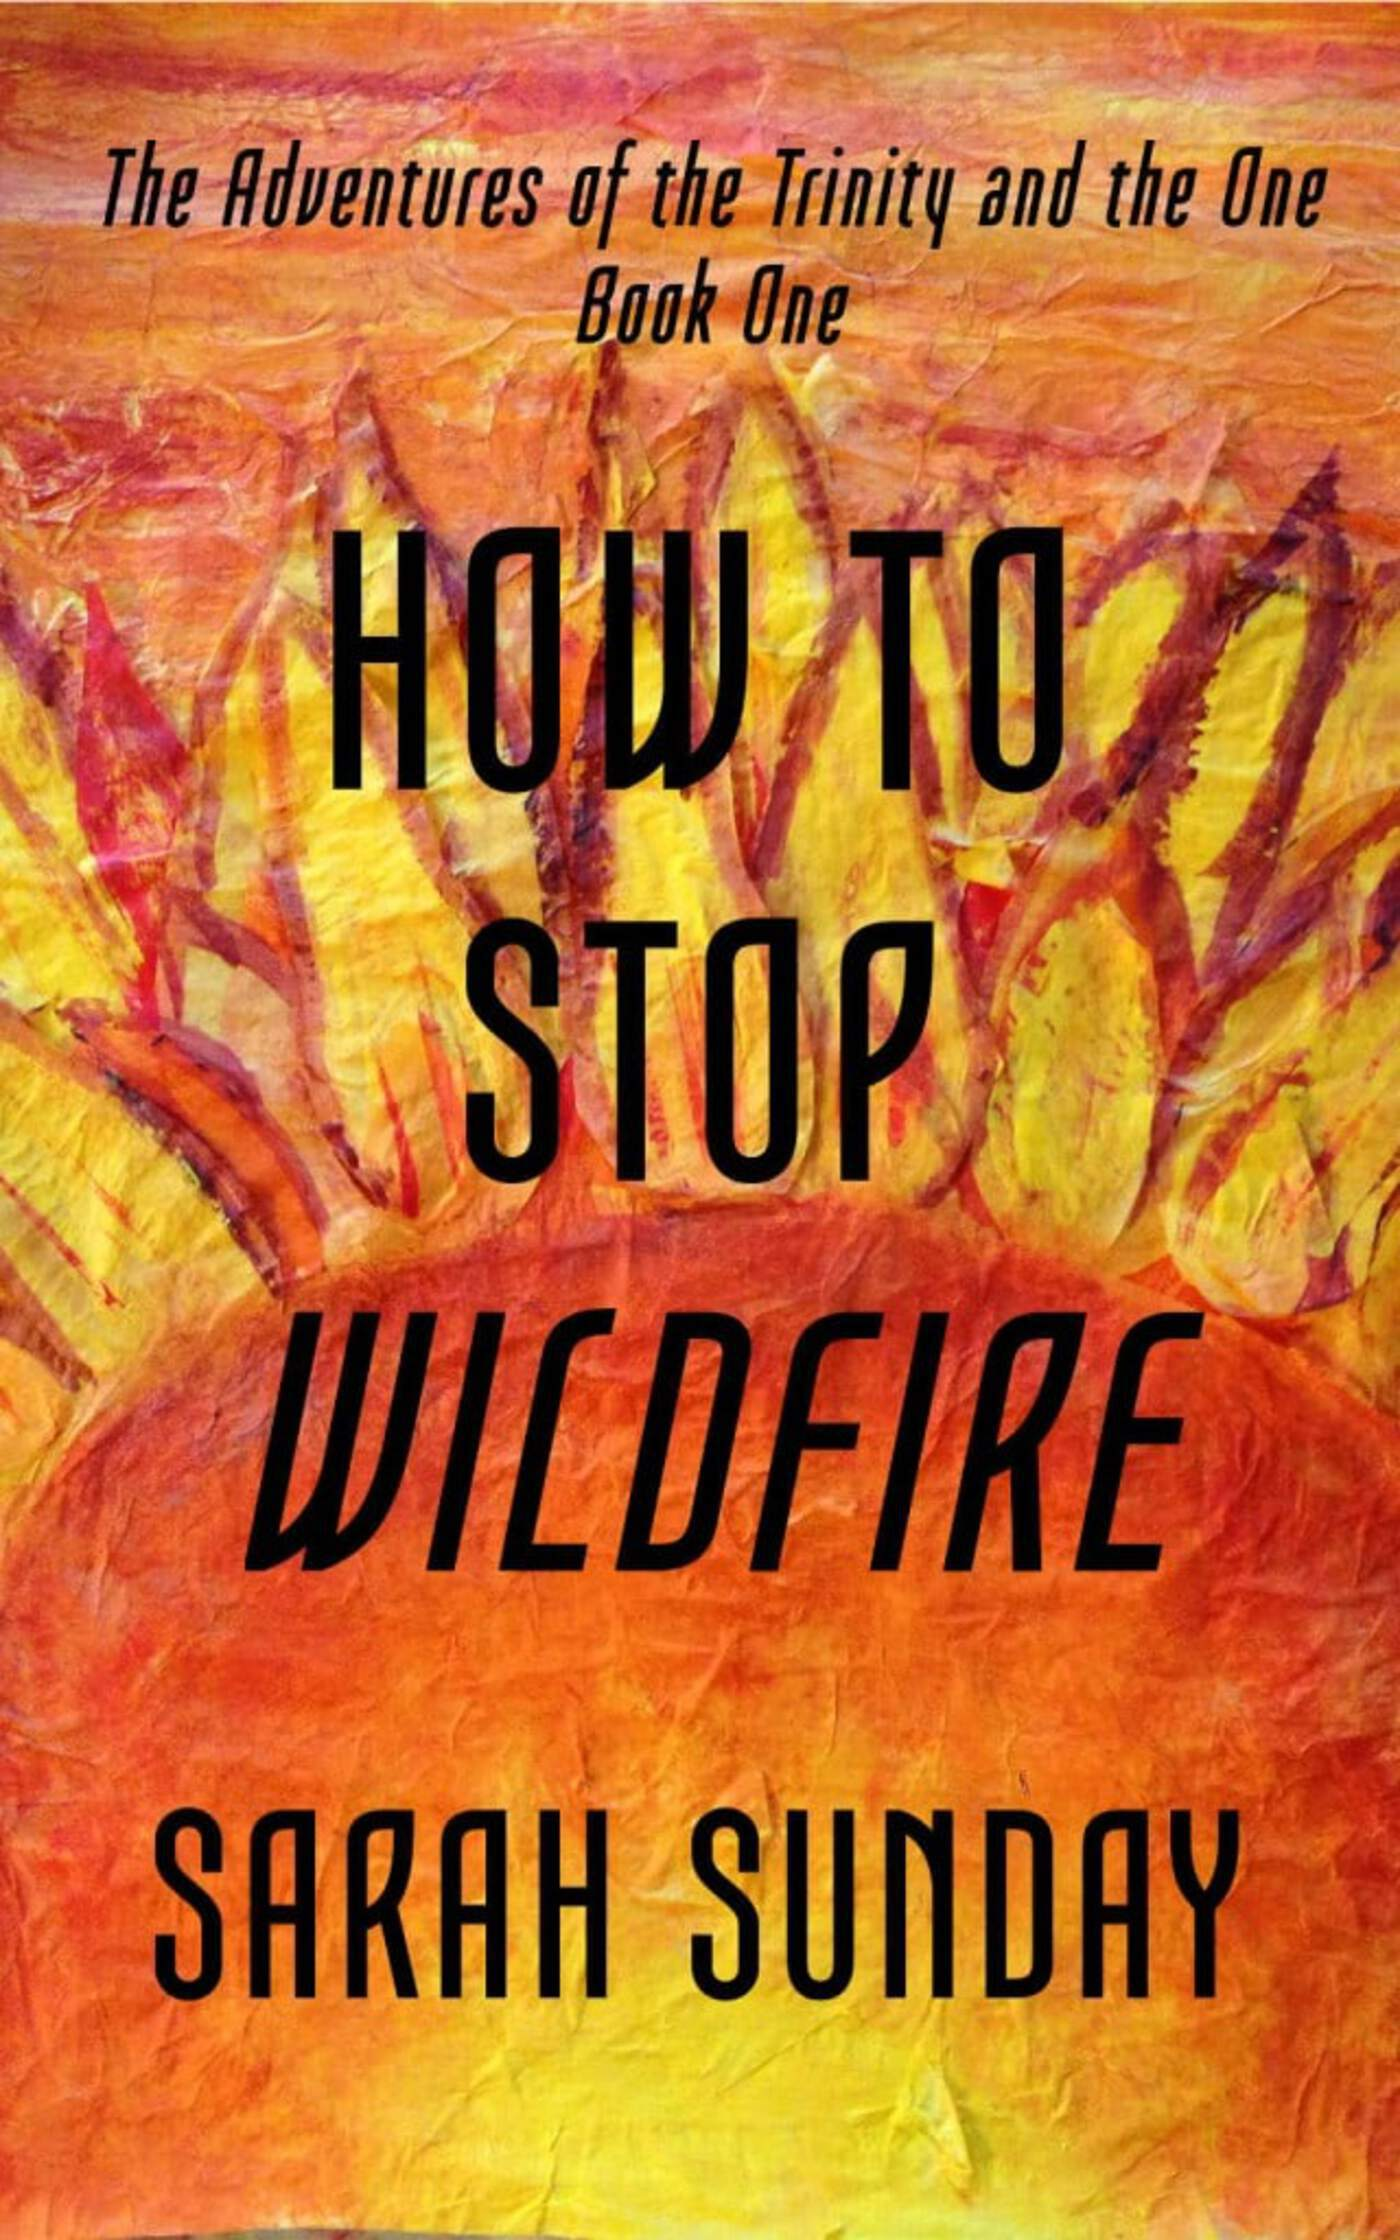 New Book Cover for How to Stop Wildfire!